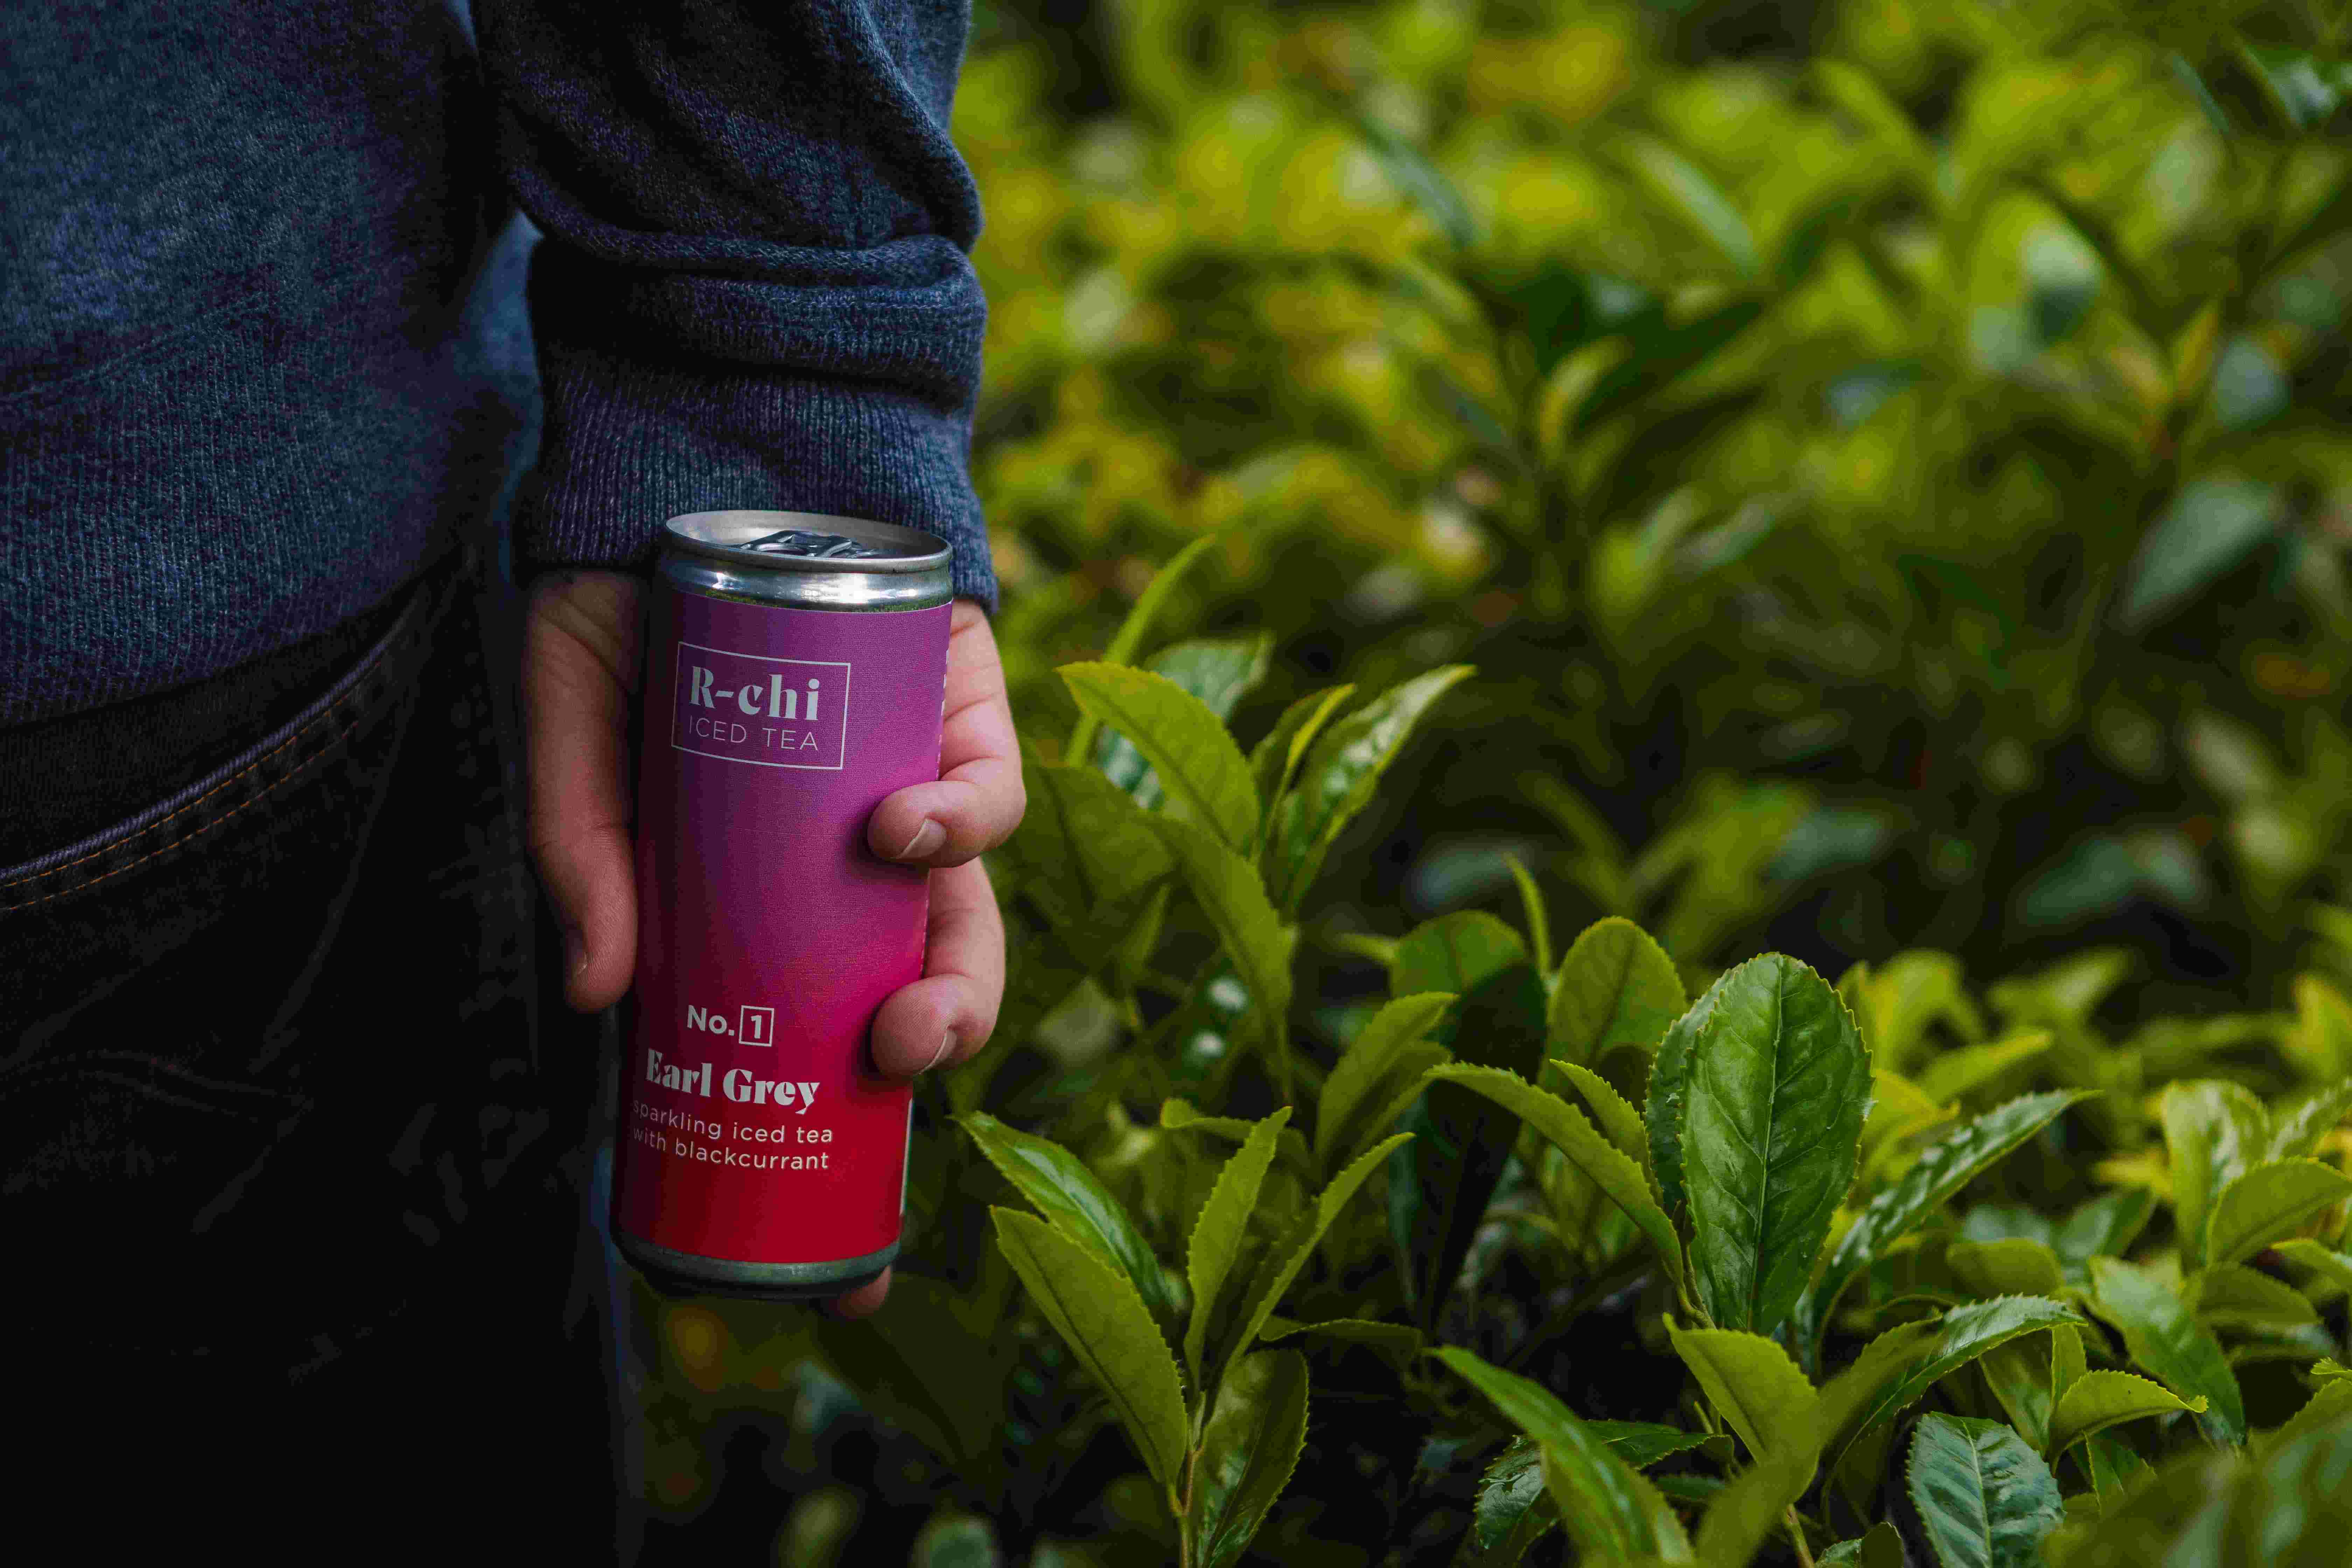 Archie Boscawen amongst a field of tea camelia trees shrubs with blue jumper. Holding a pink and red can of R chi iced tea.